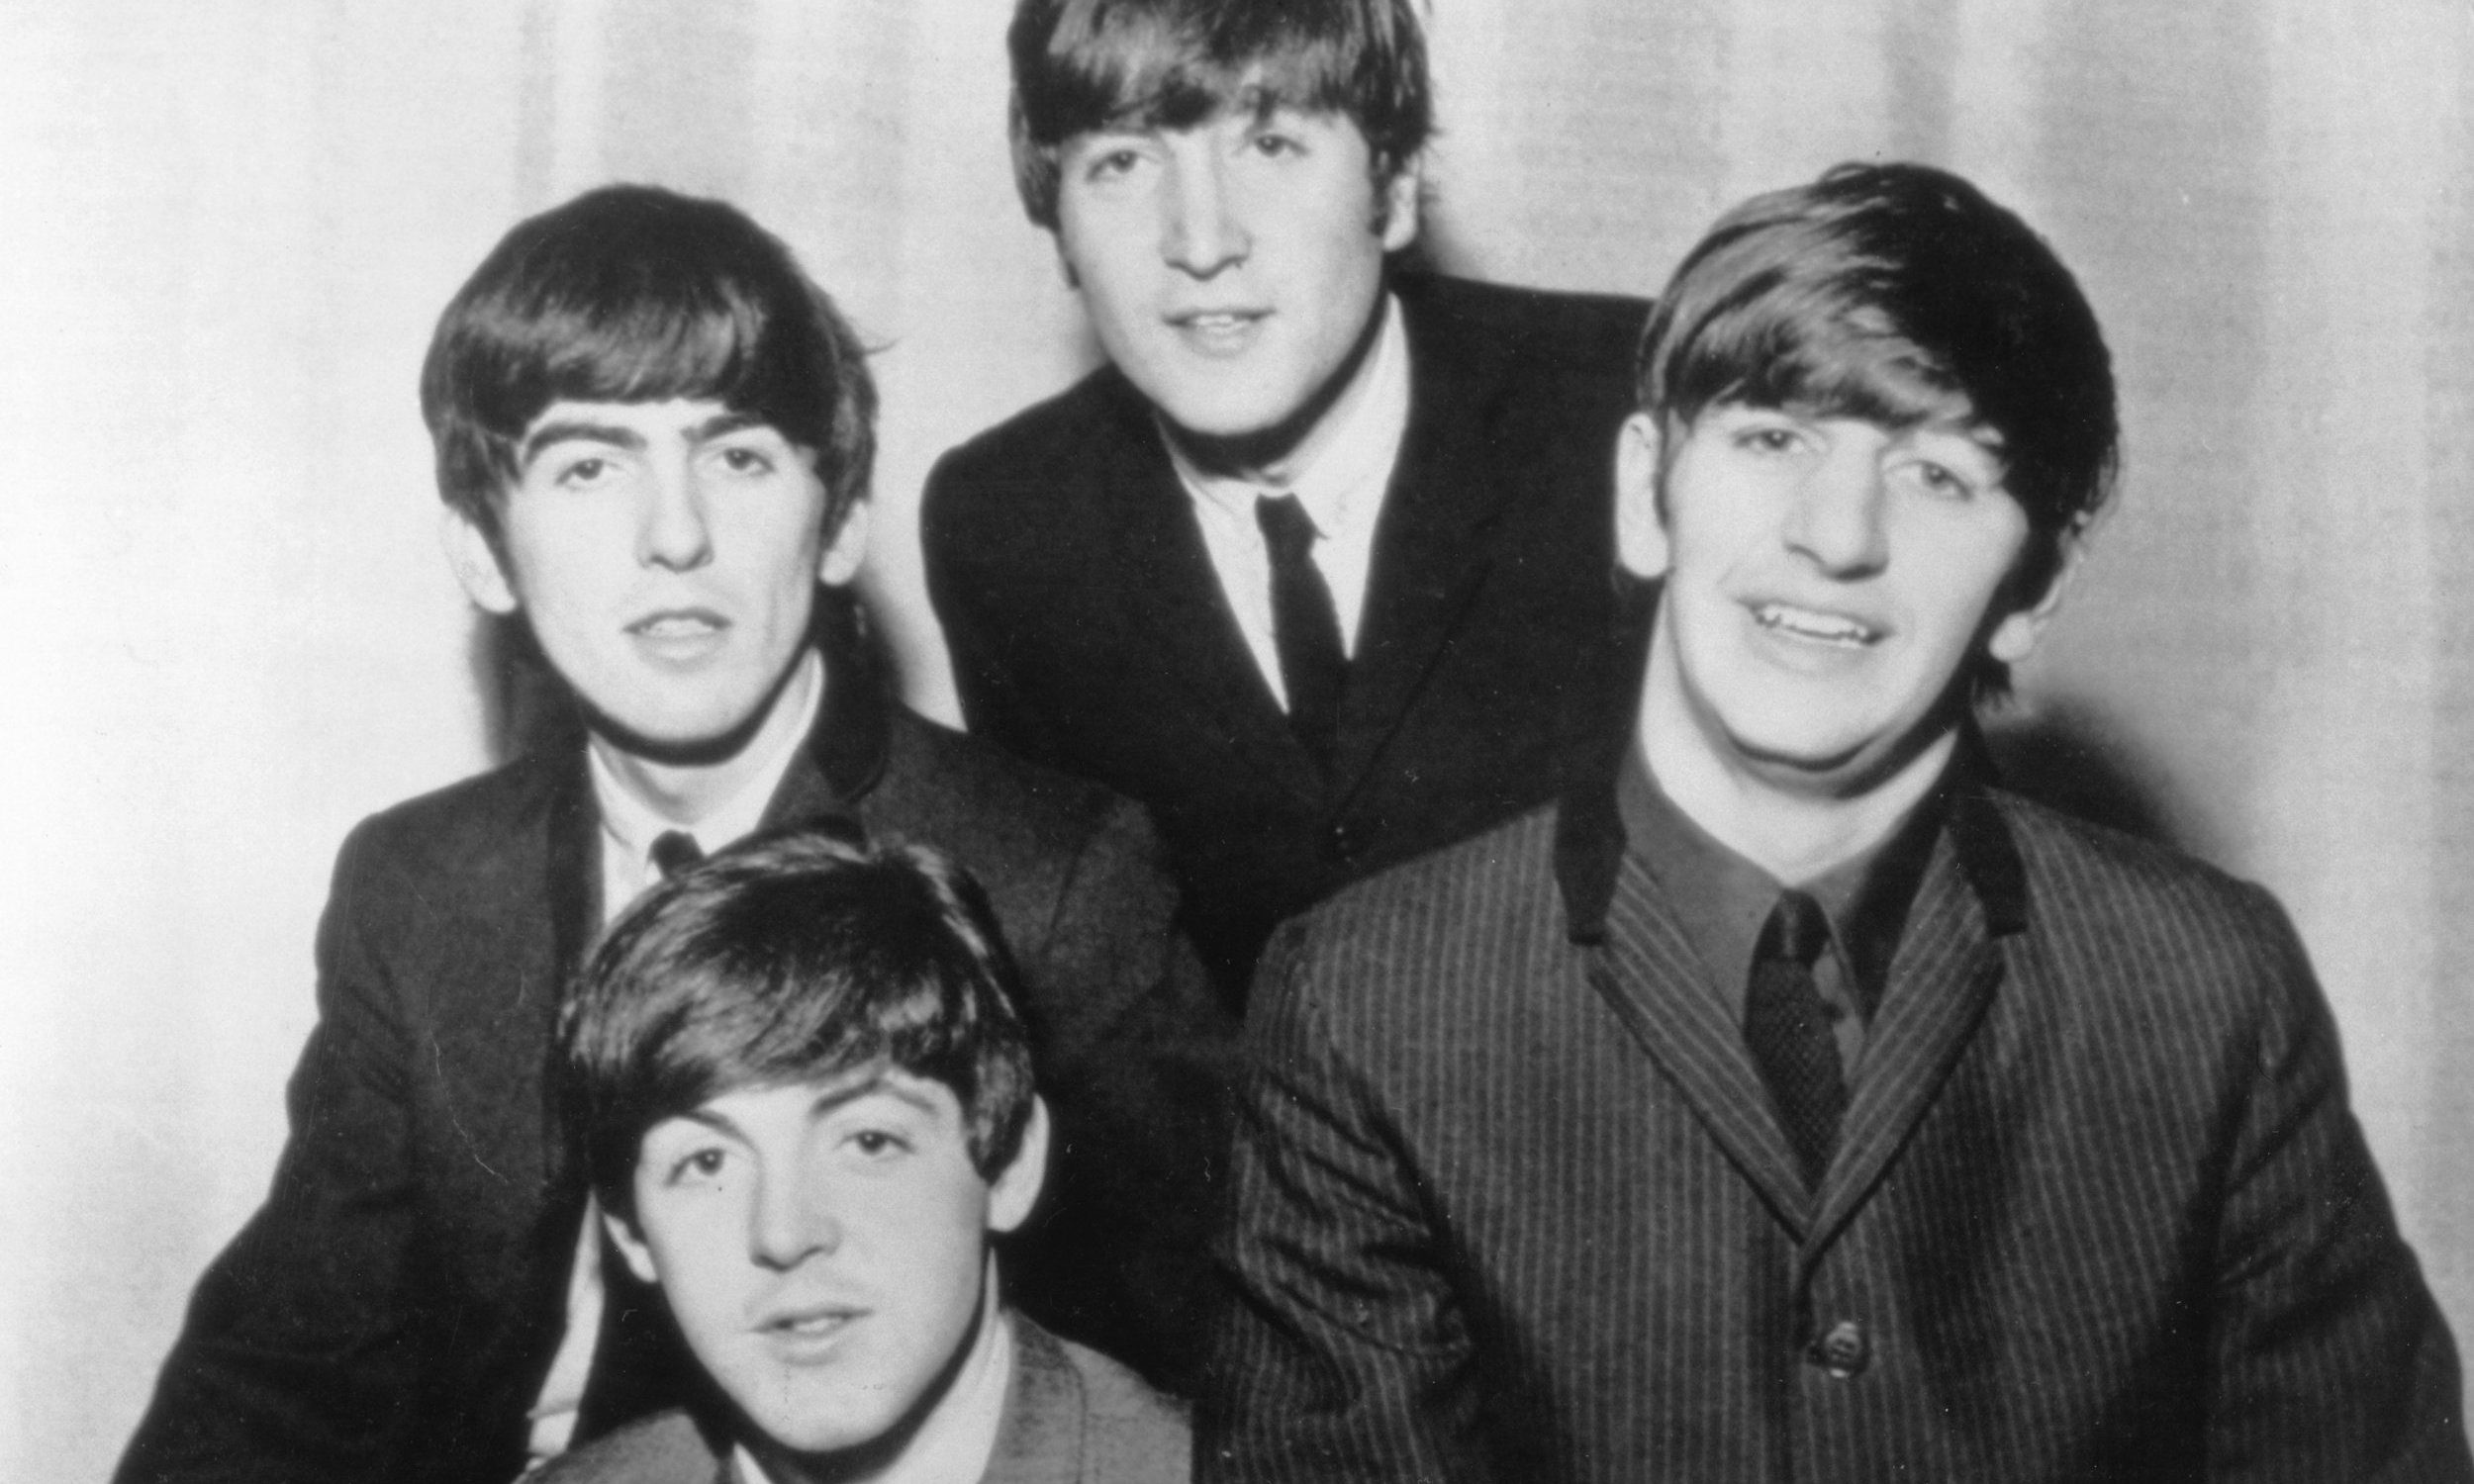 The Beatles still make £67,000 a day from an old company that shut down half a century ago